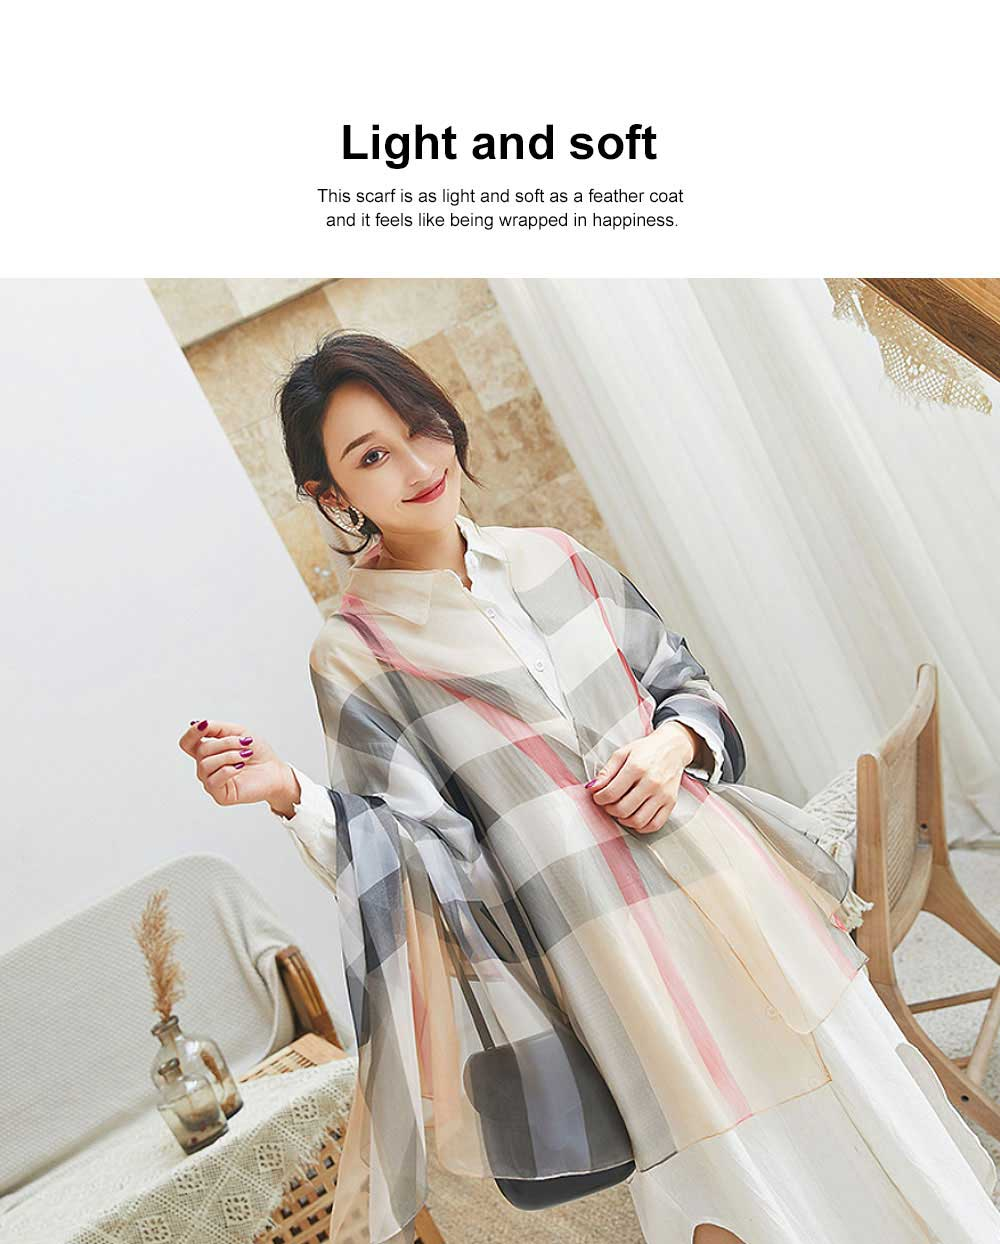 2019 Hot Gradient Grid Pants Scarf, New Sunscreen Scarf Shawl in Spring and Summer for Girl Lady 3